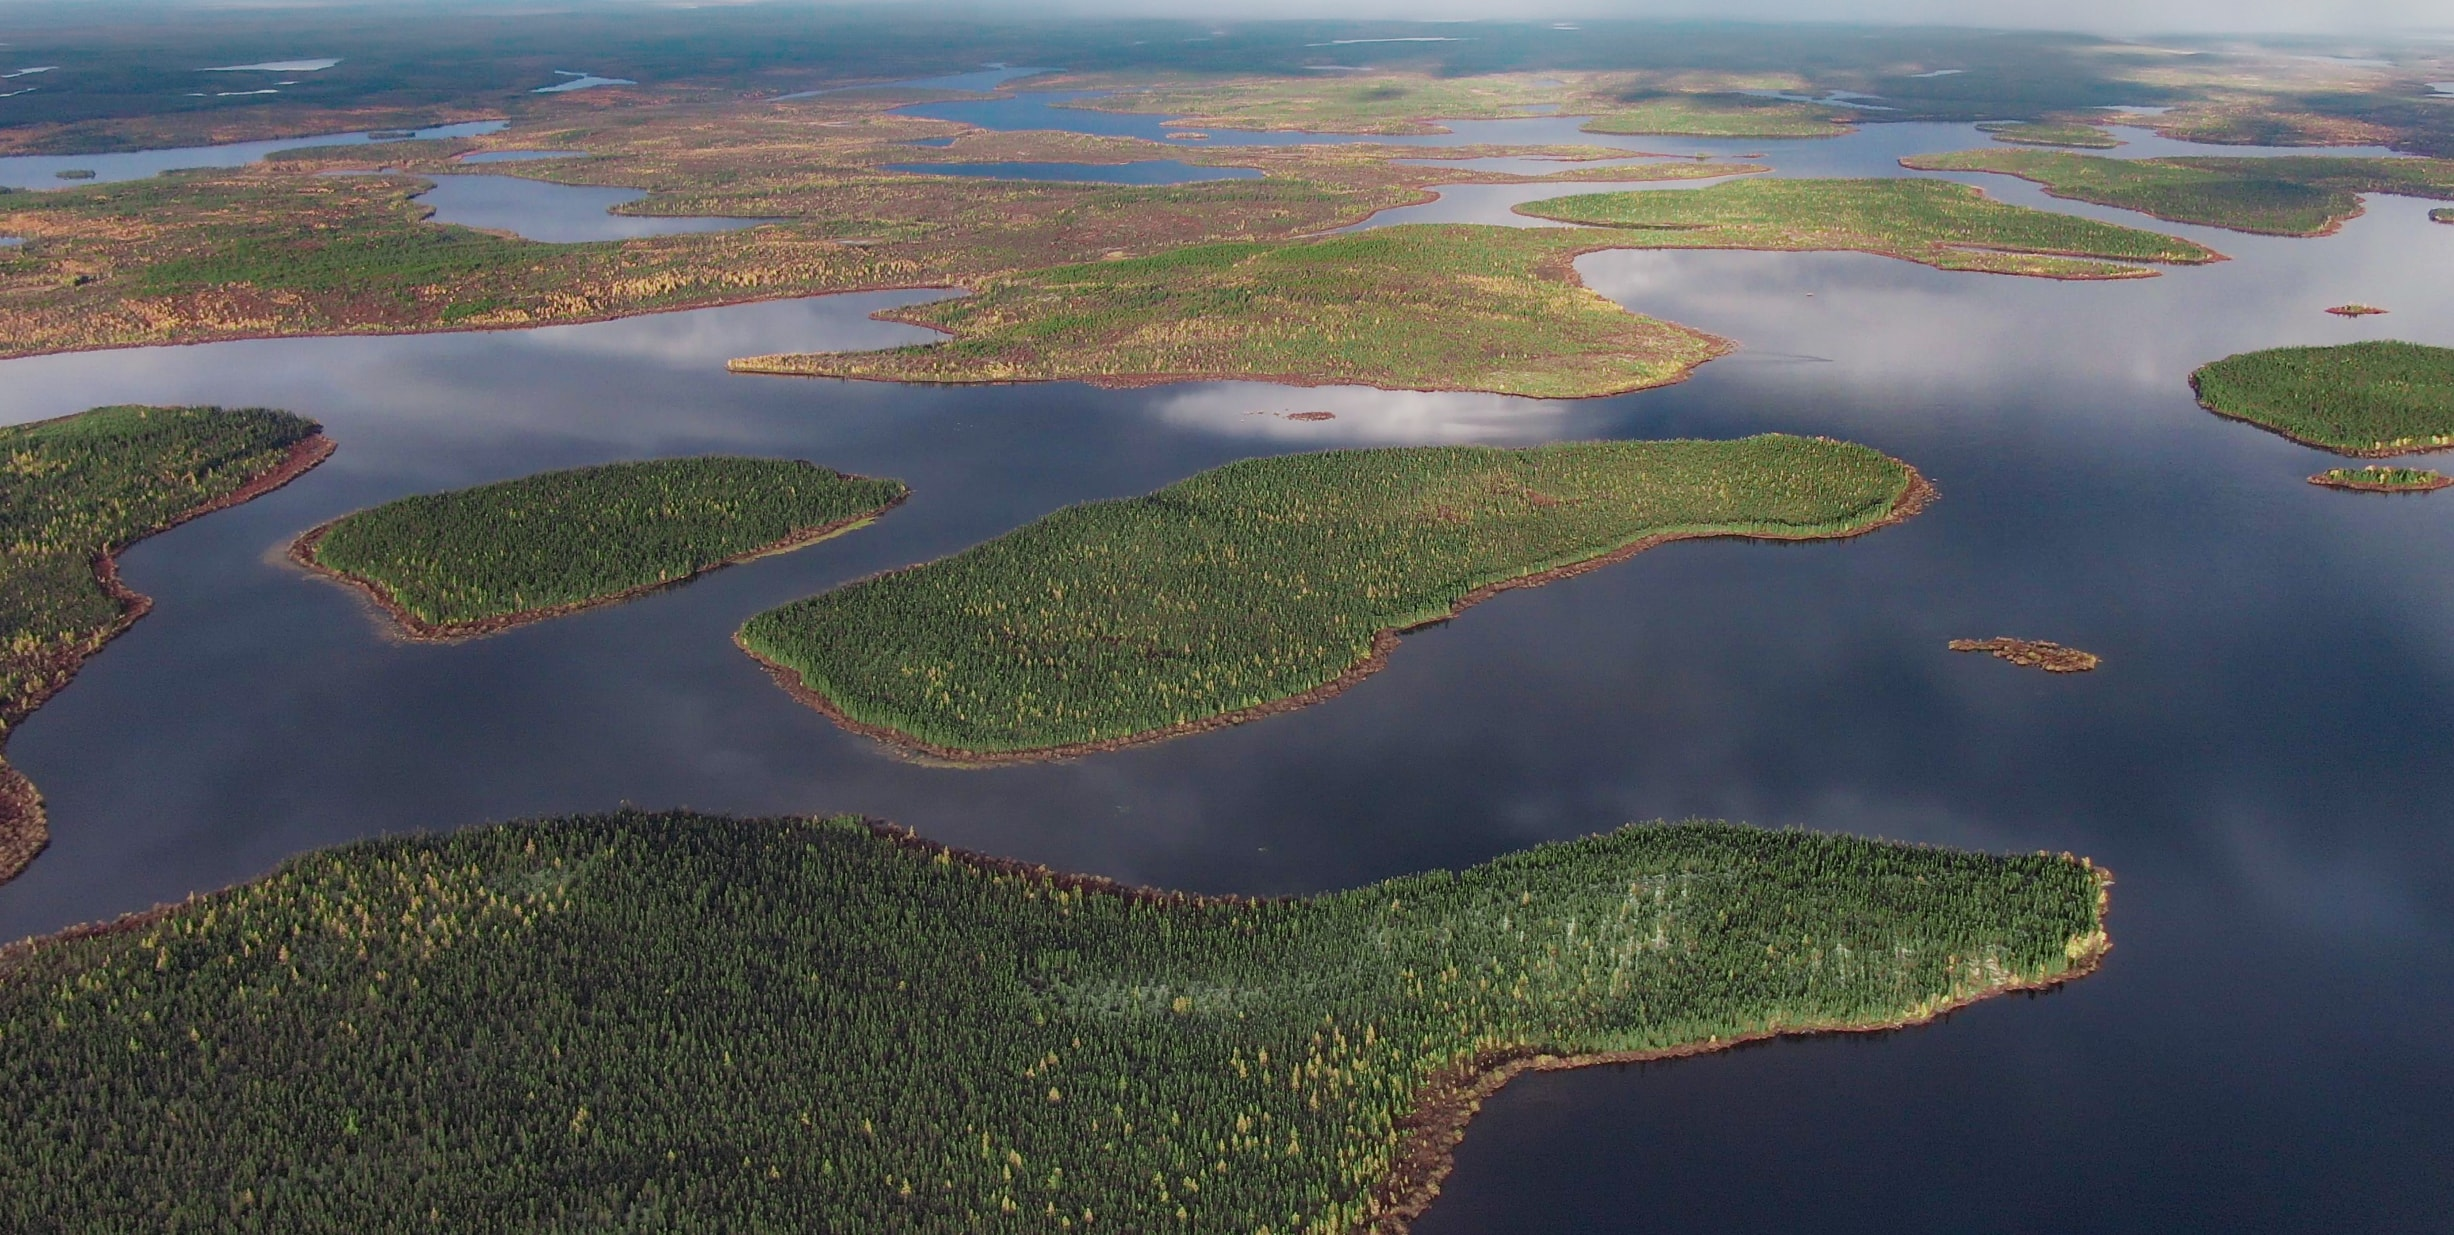 Aerial view of islands in Seal River Watershed